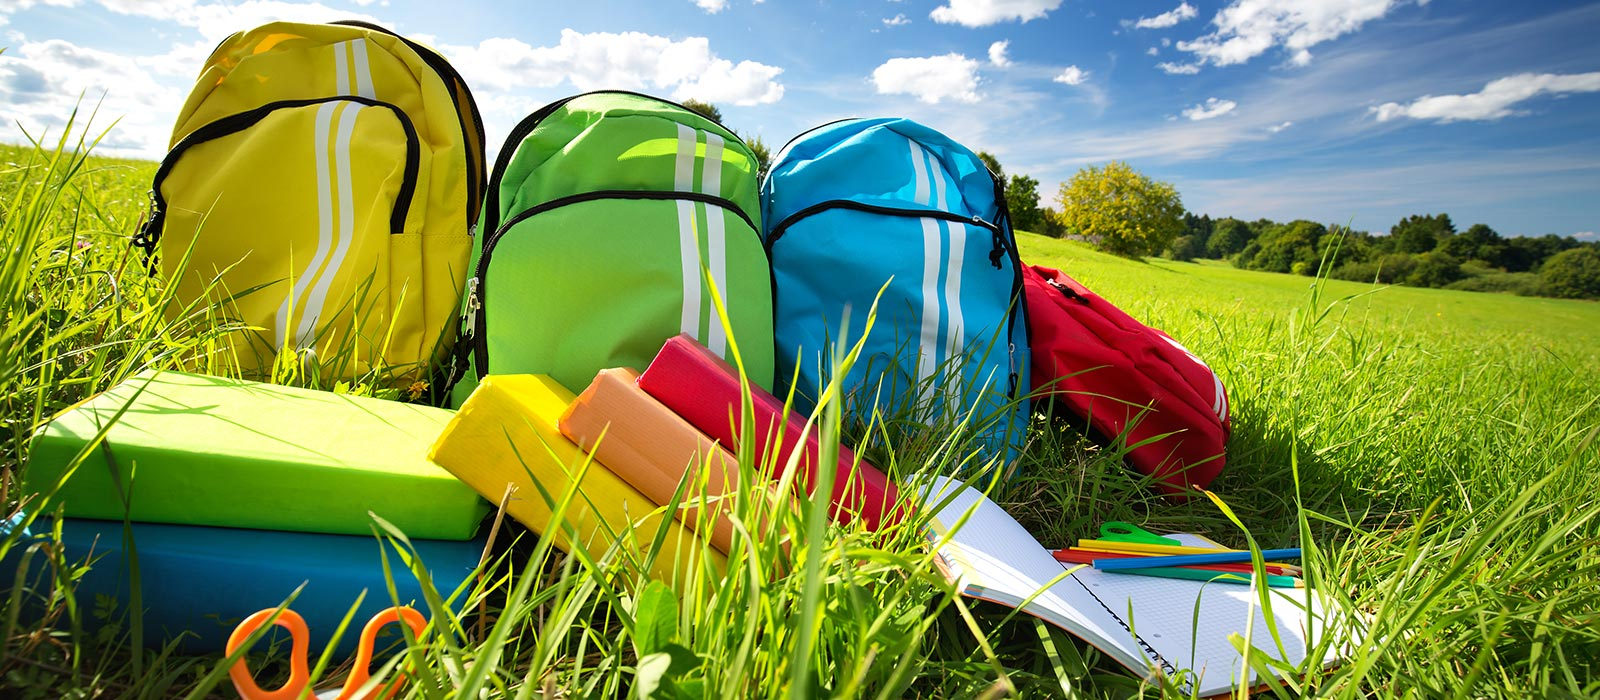 Backpacks and school supplies on the grass on a sunny day